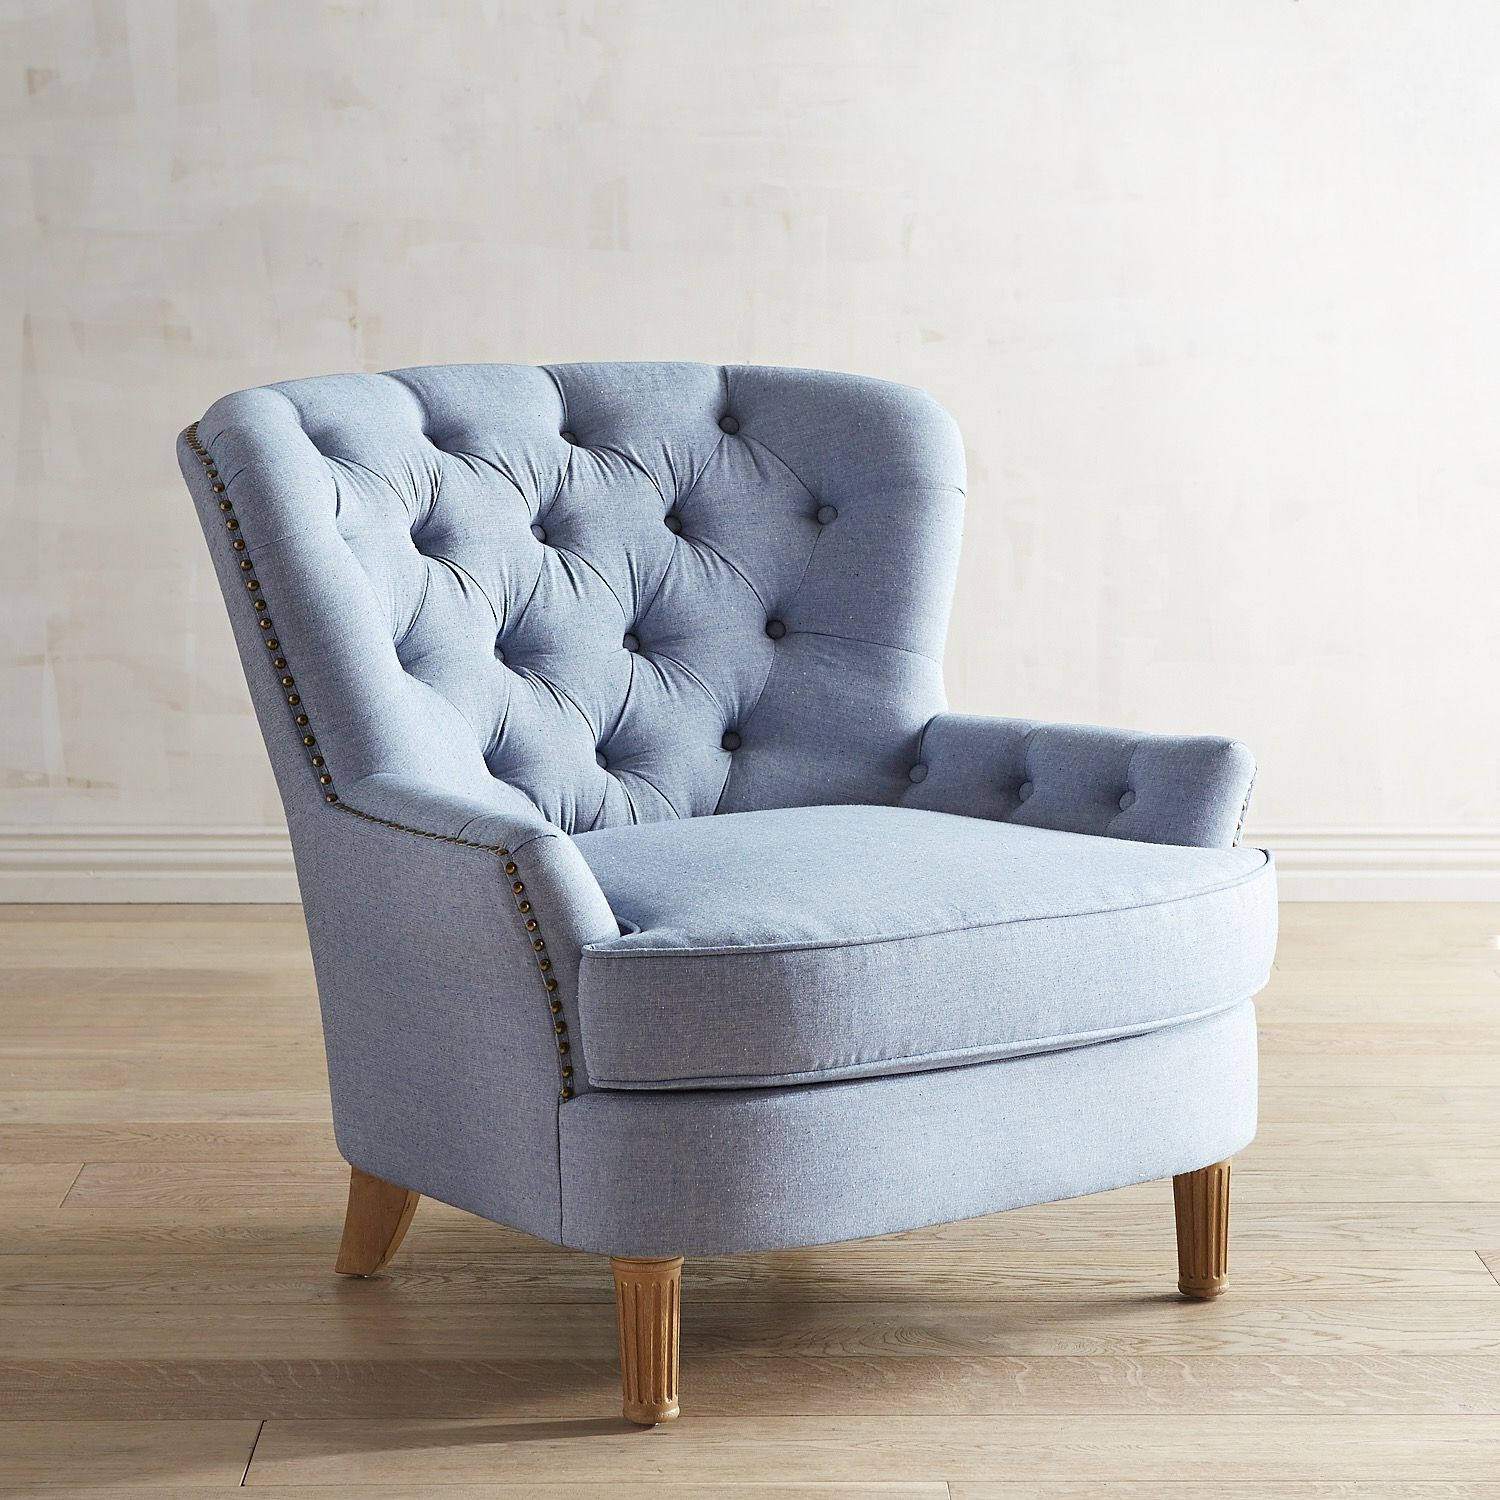 Eliza Chambray Blue Chair | Bedroom chair, Blue armchair, Chair